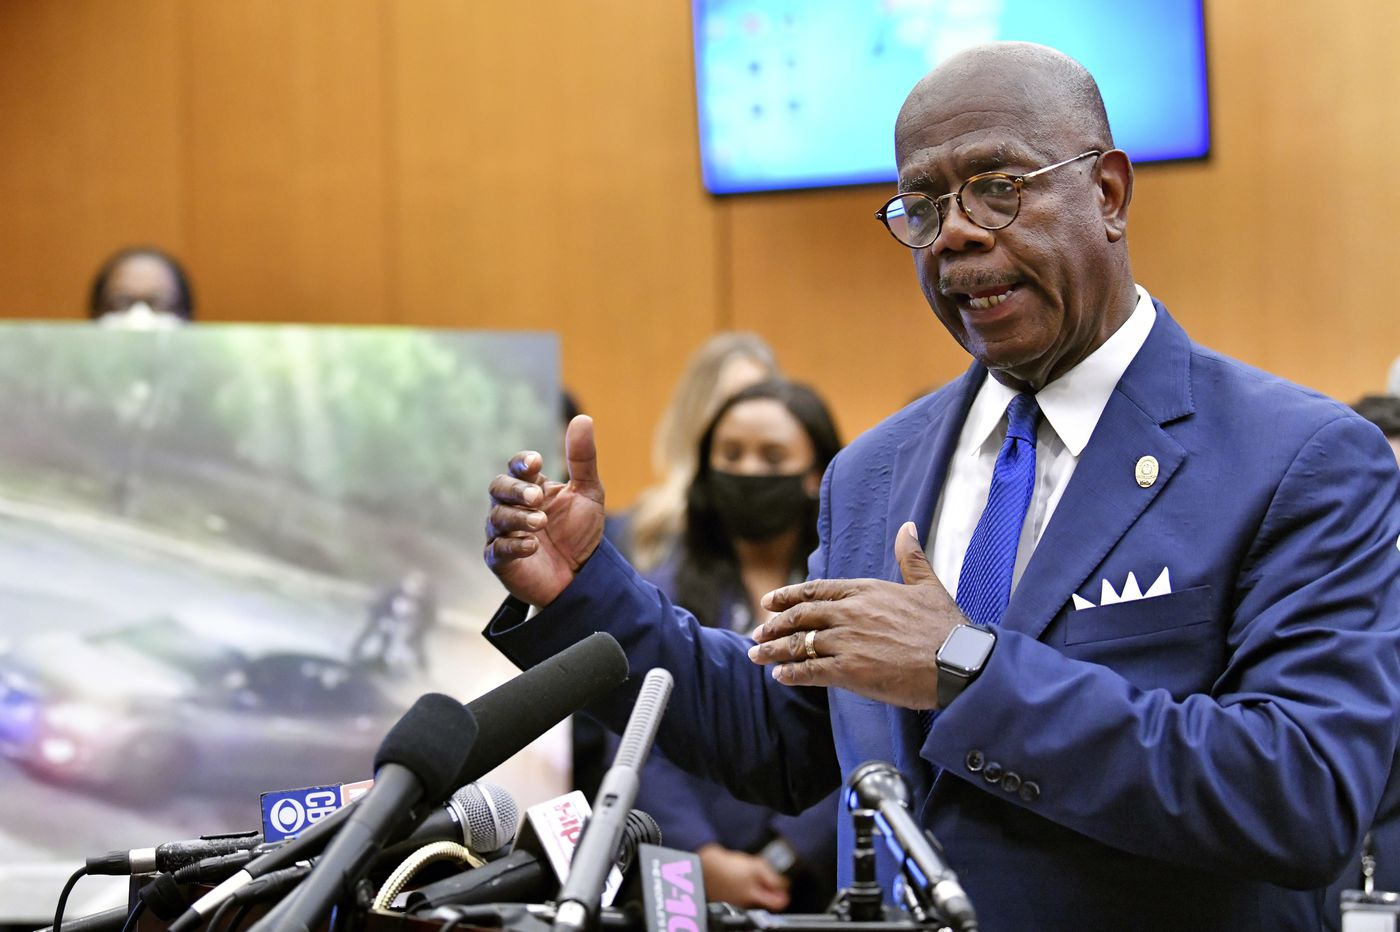 Atlanta police call out sick to protest murder charge against officer who shot Rayshard Brooks